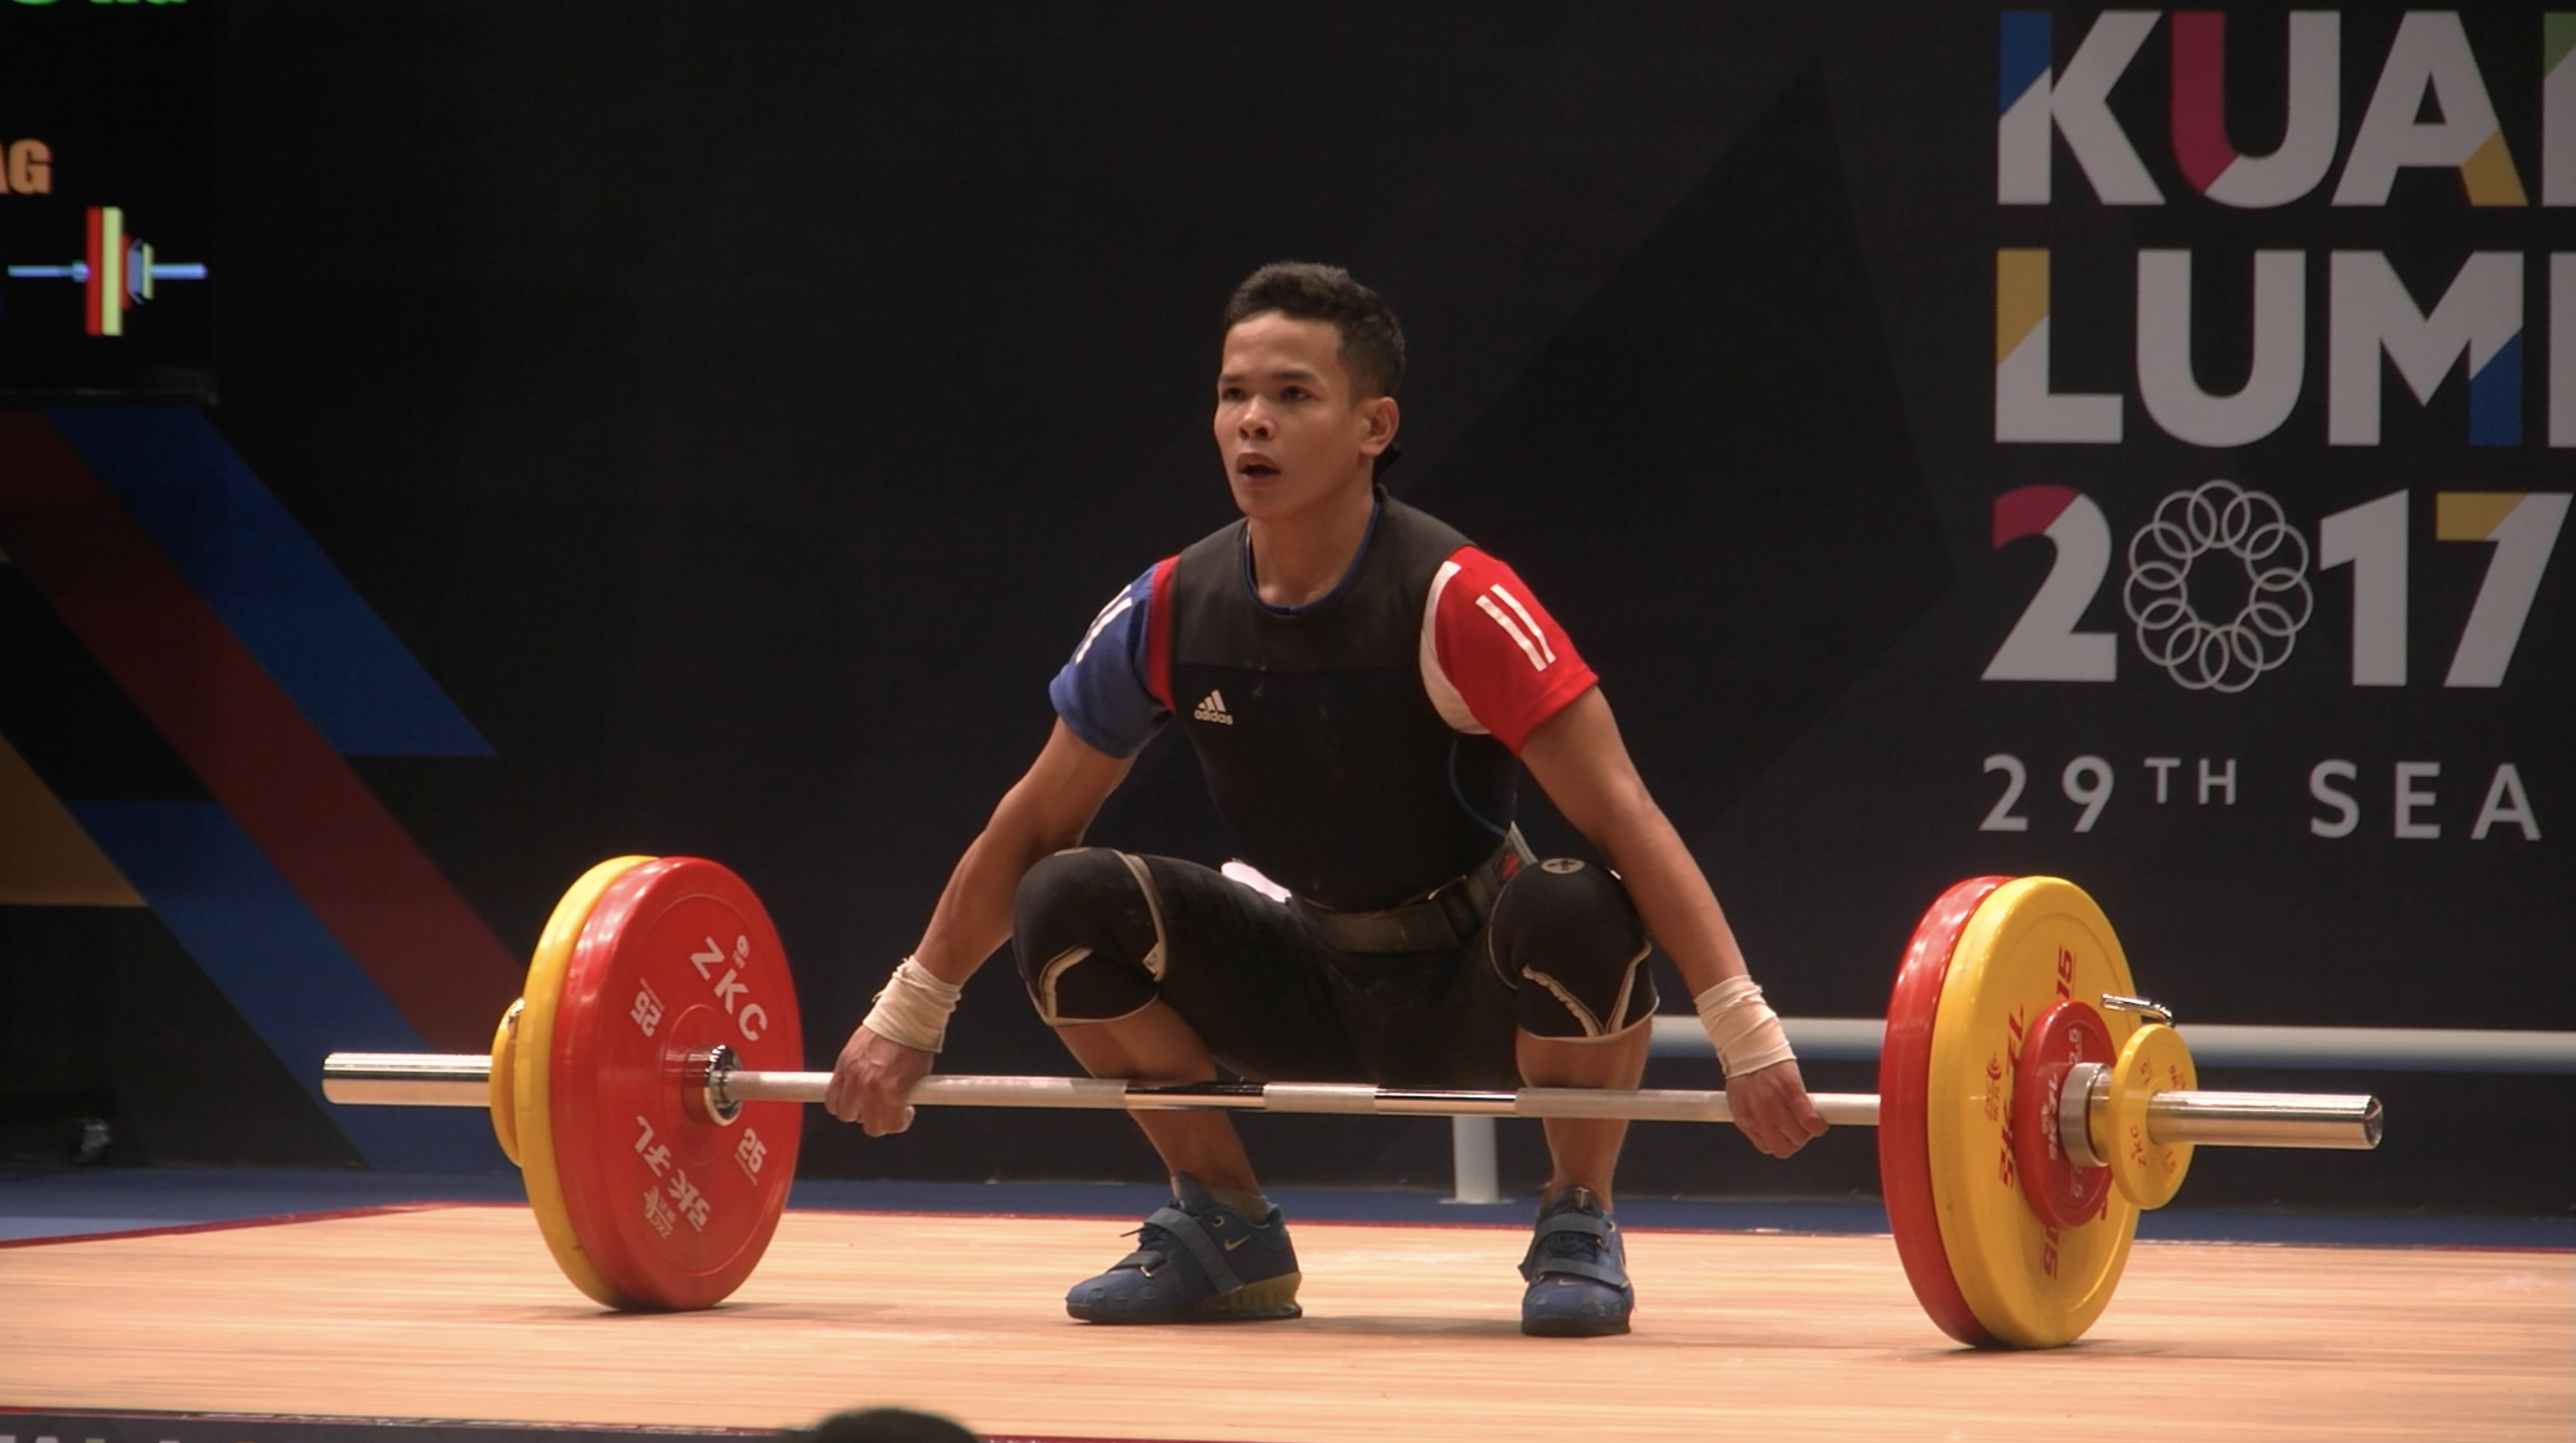 Colonia weightlifting Aug 28 2017   02 - Asian Games Weightlifting